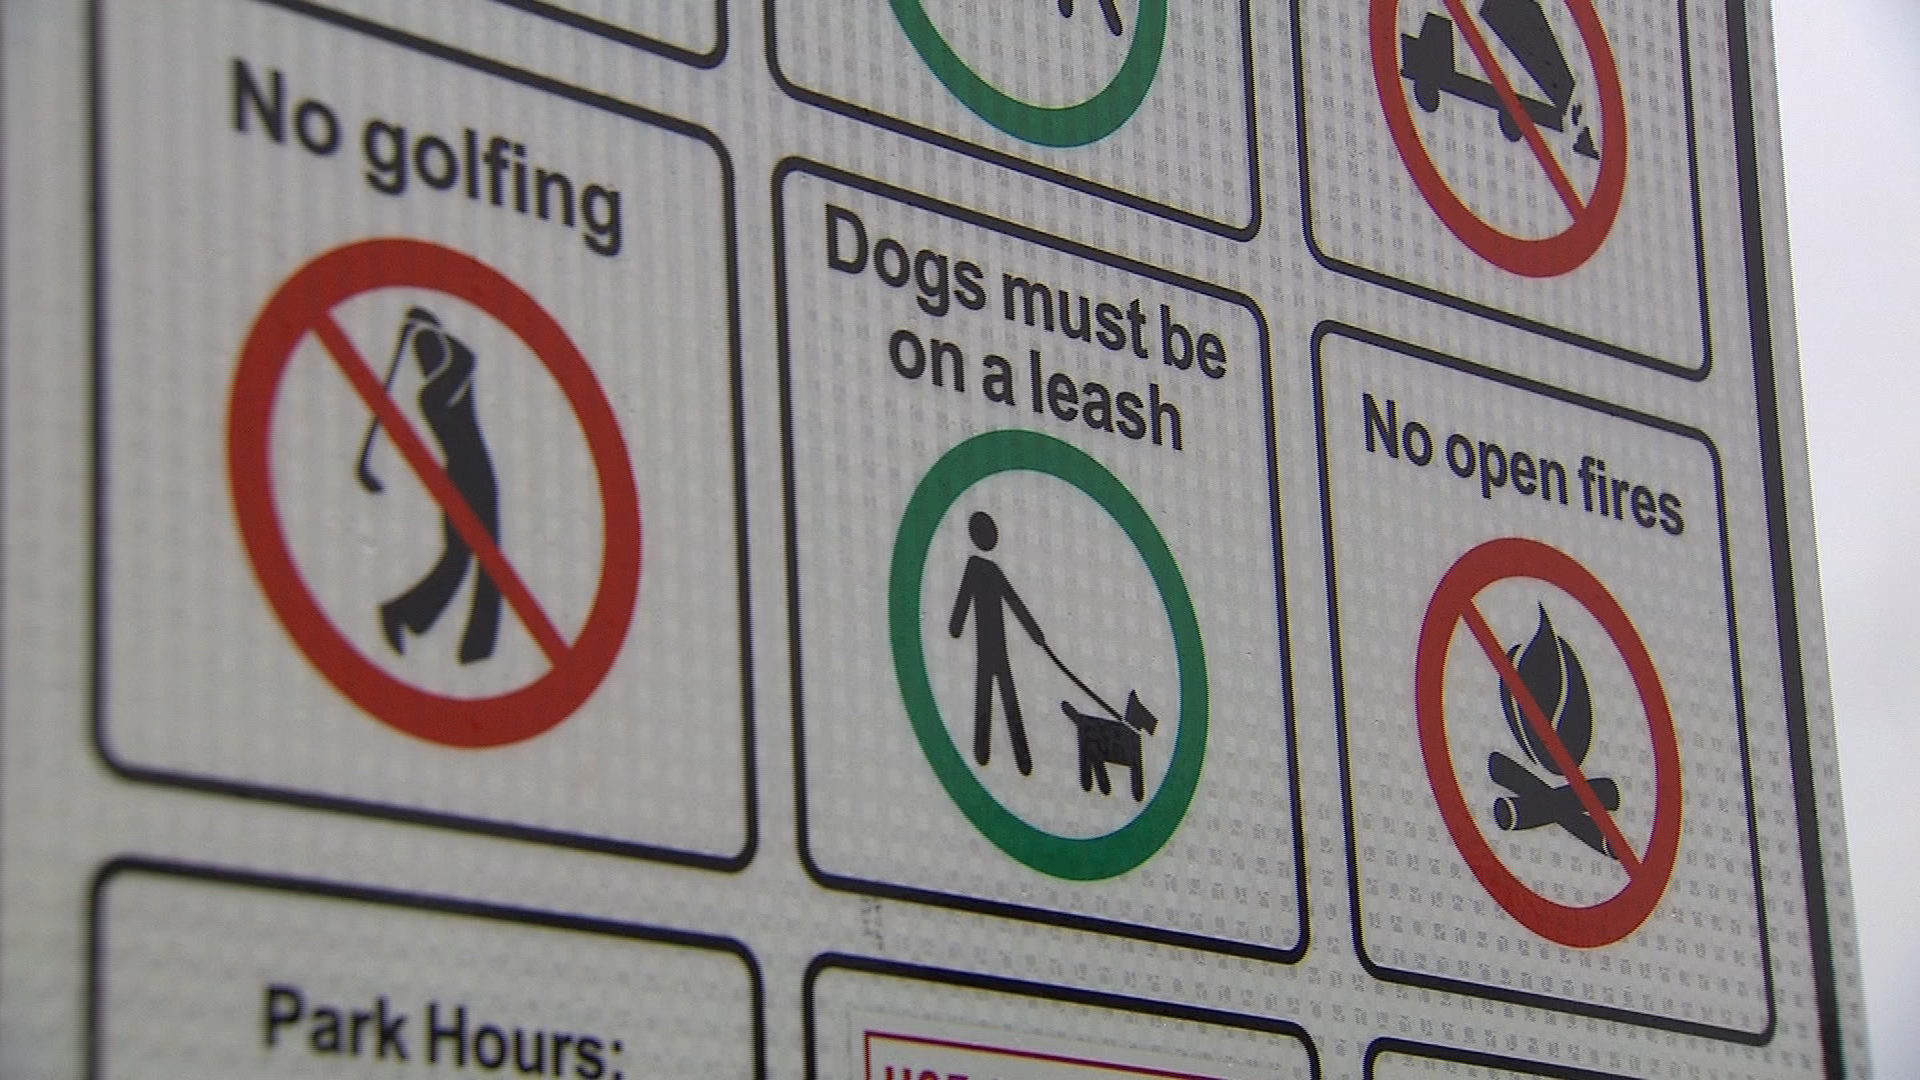 A sign stating that dogs must be leashed is seen at Brock Ridge Community Park in Pickering on March 30, 2017. CITYNEWS